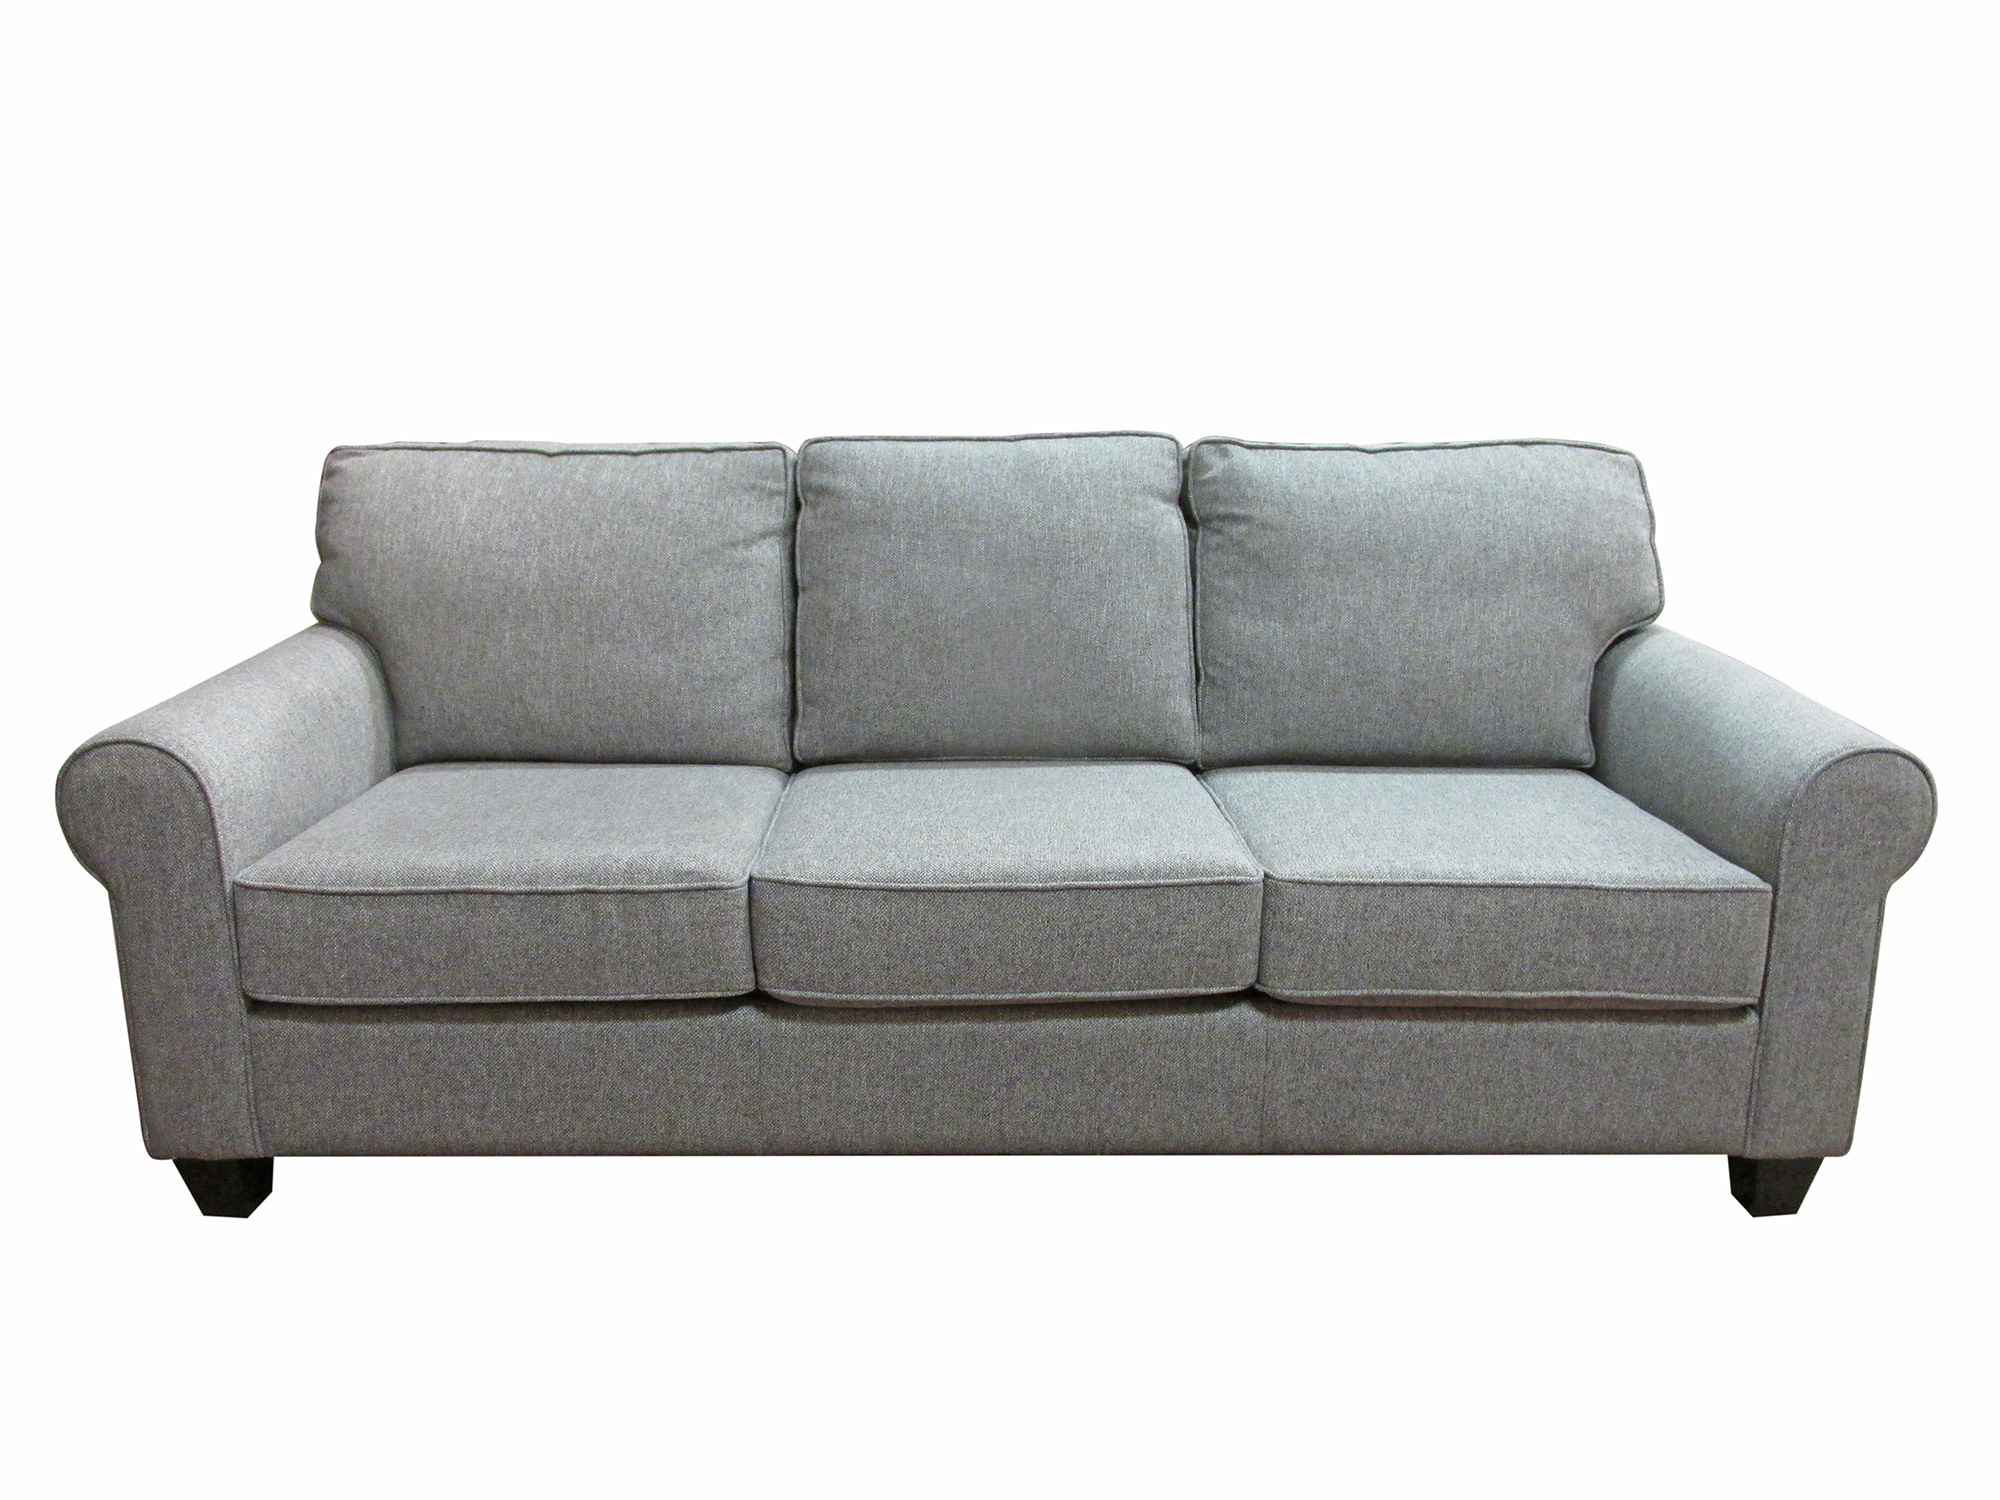 barrymore sofa sectional with sleeper and recliner parker 2 available ormes furniture